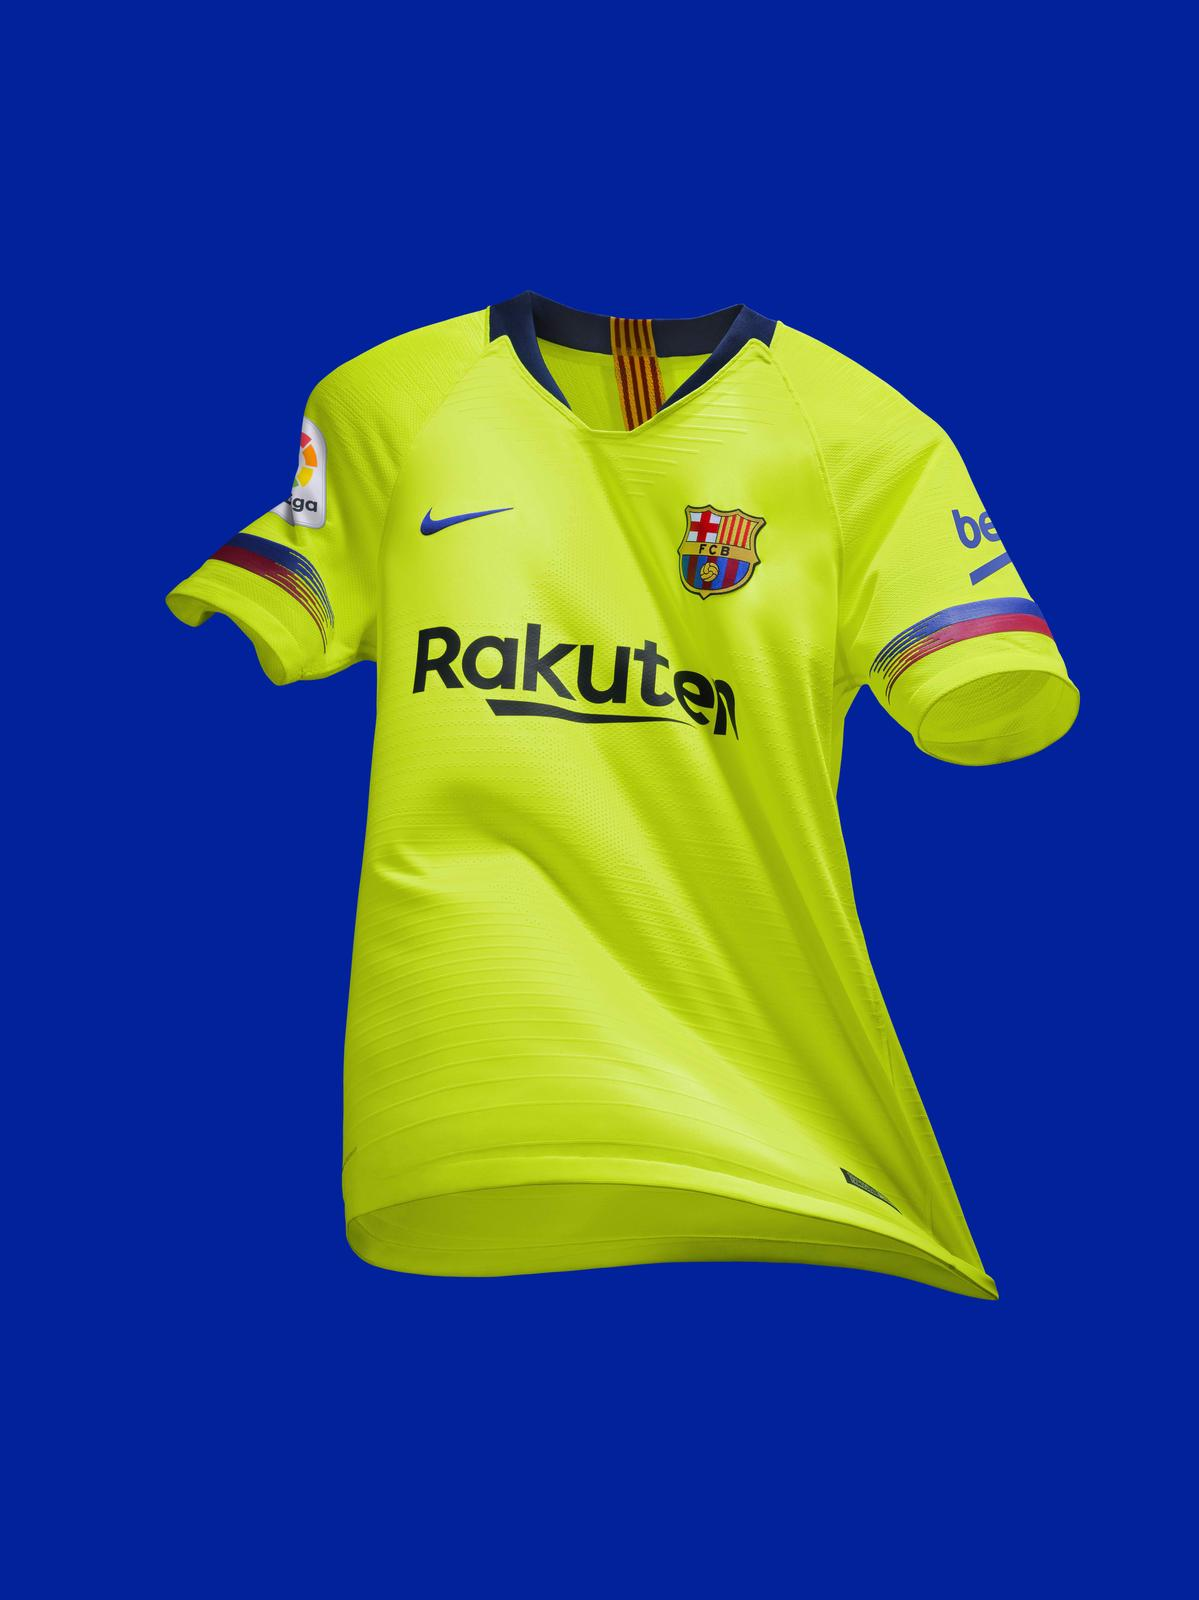 FC Barcelona s Latest Away Kit Revels in a Daring History 0 c0f46cf4e7fc5